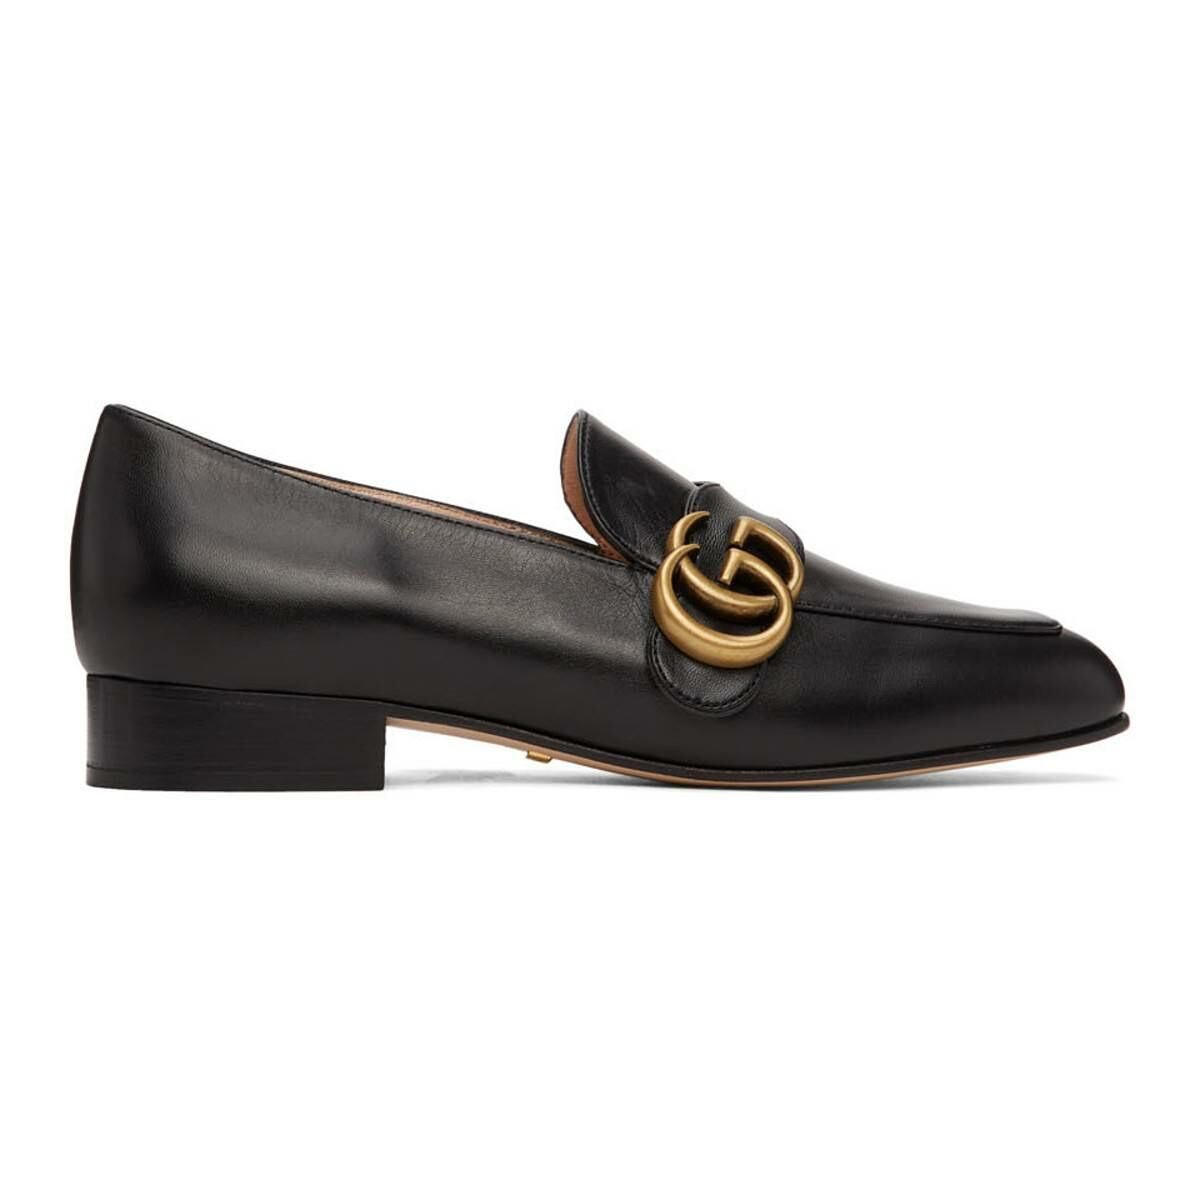 Gucci Black GG Marmont Loafers Ssense USA WOMEN Women SHOES Womens SLIPPERS